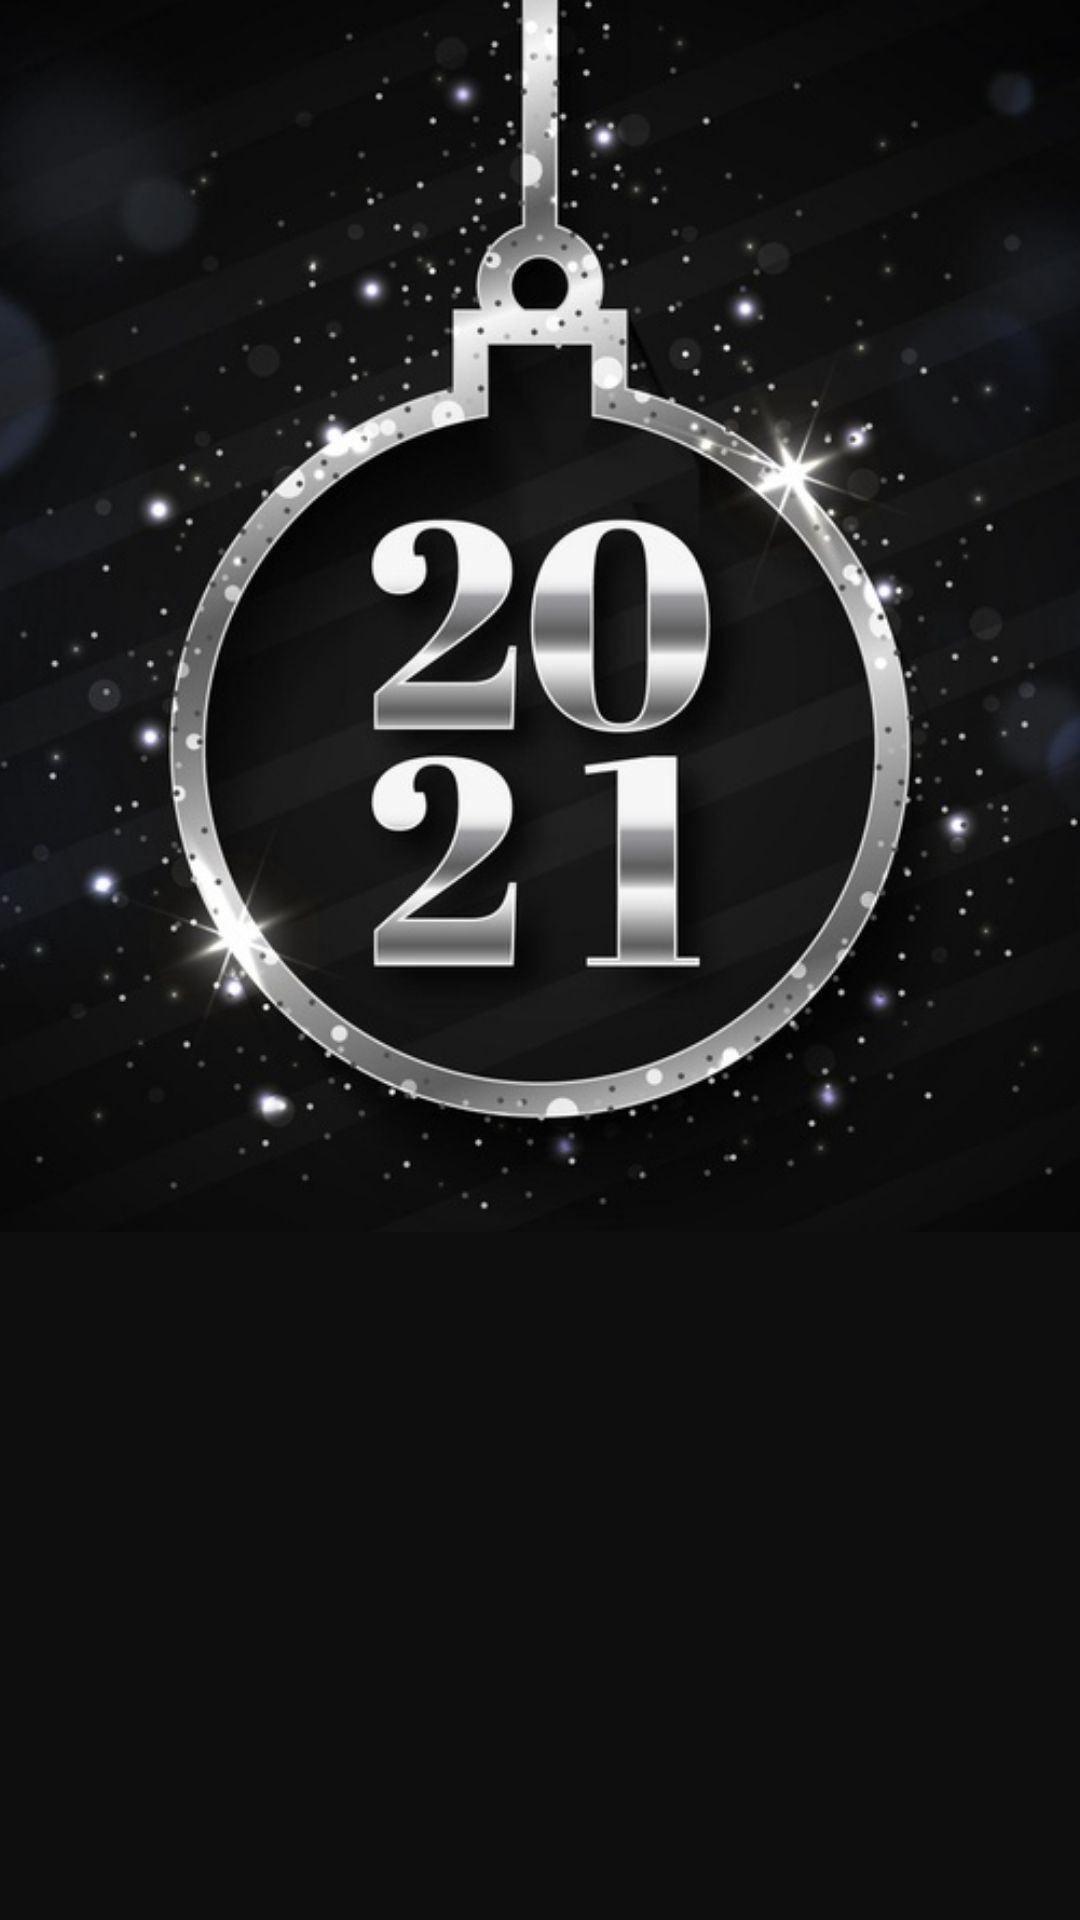 Best New Year Images Wallpapers 2021 For Mobile Phones New Year Images Happy New Year Images Happy New Year Wallpaper